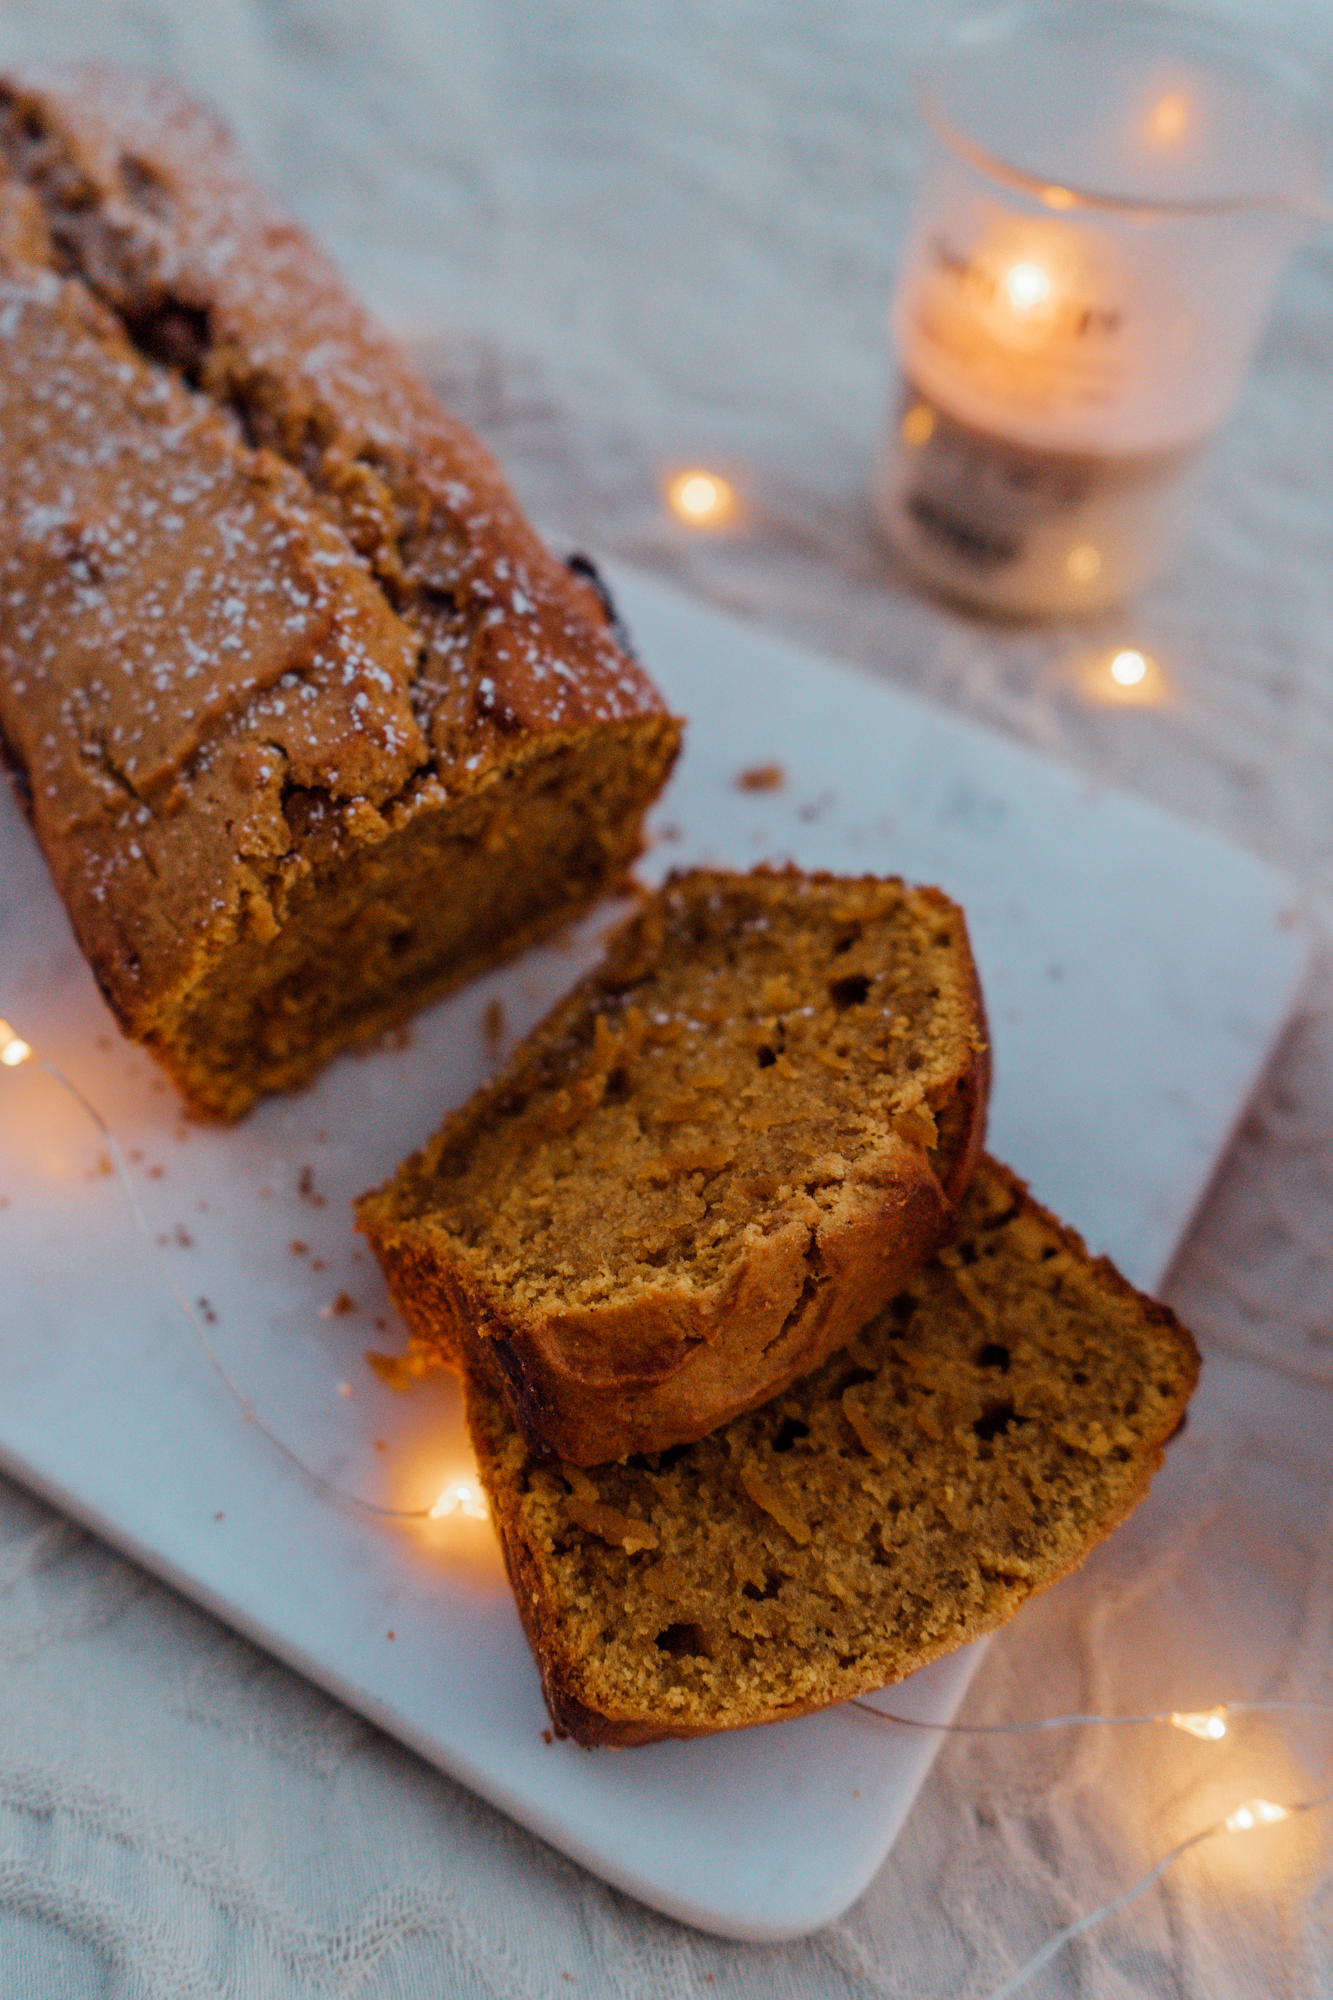 Simple Baking: Pumpkin Gingerbread Recipe